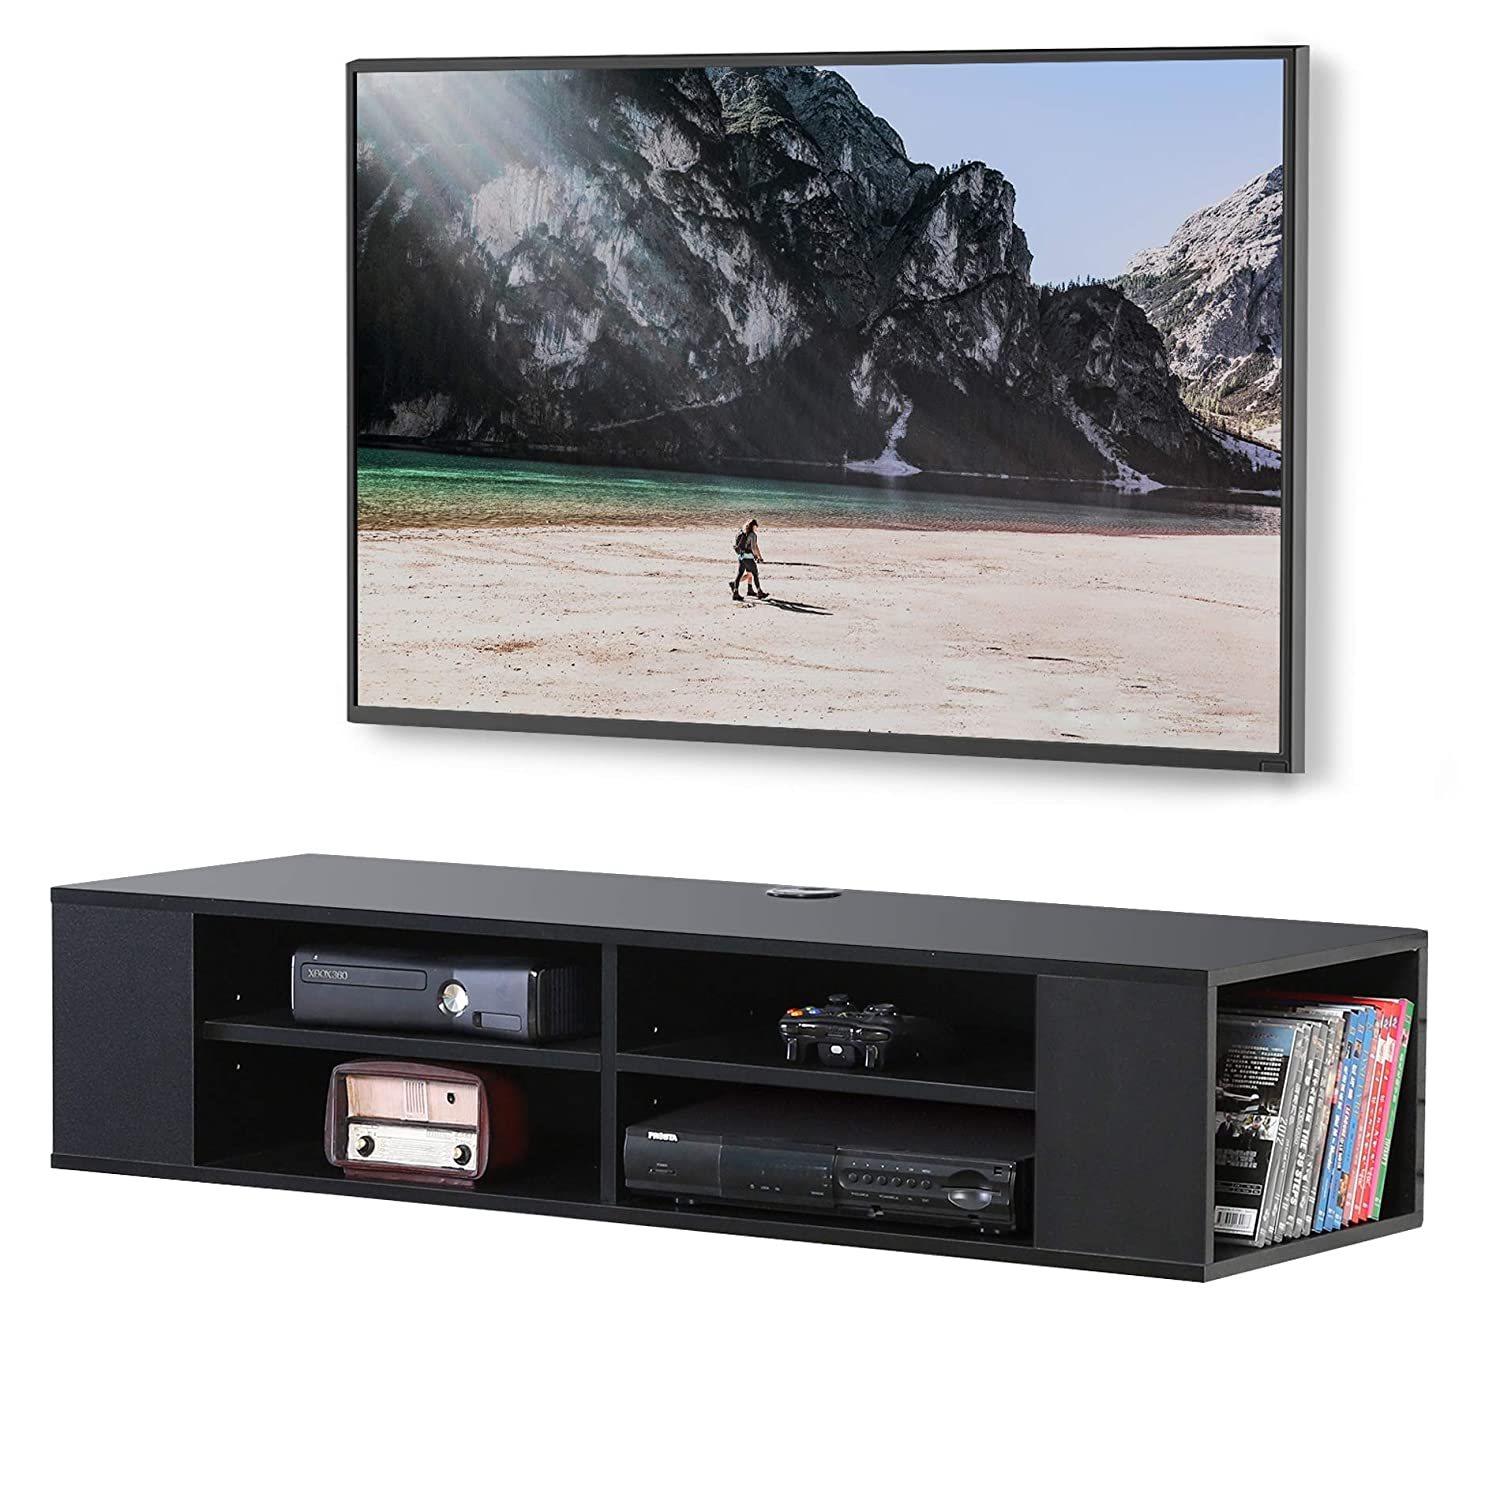 FITUEYES Black Wall Mounted Media Console Floating TV Stand Component Shelf DS210003WB